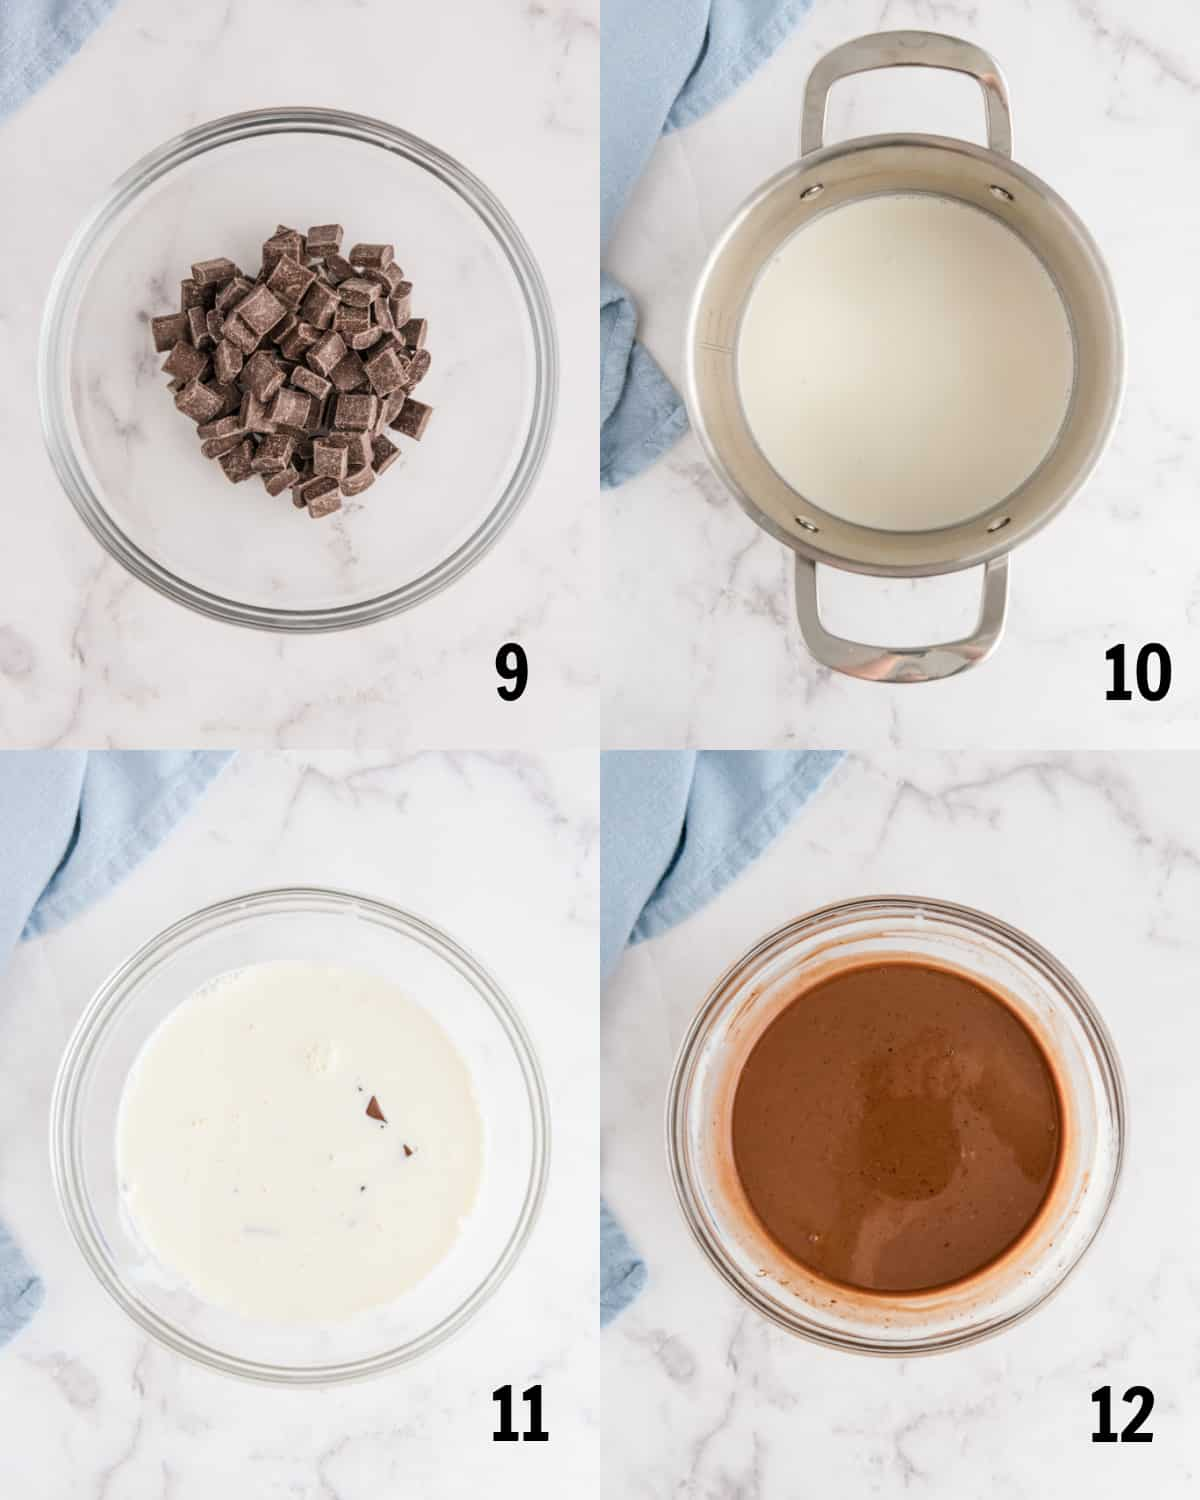 mixing together ingredients for chocolate ganache in bowl